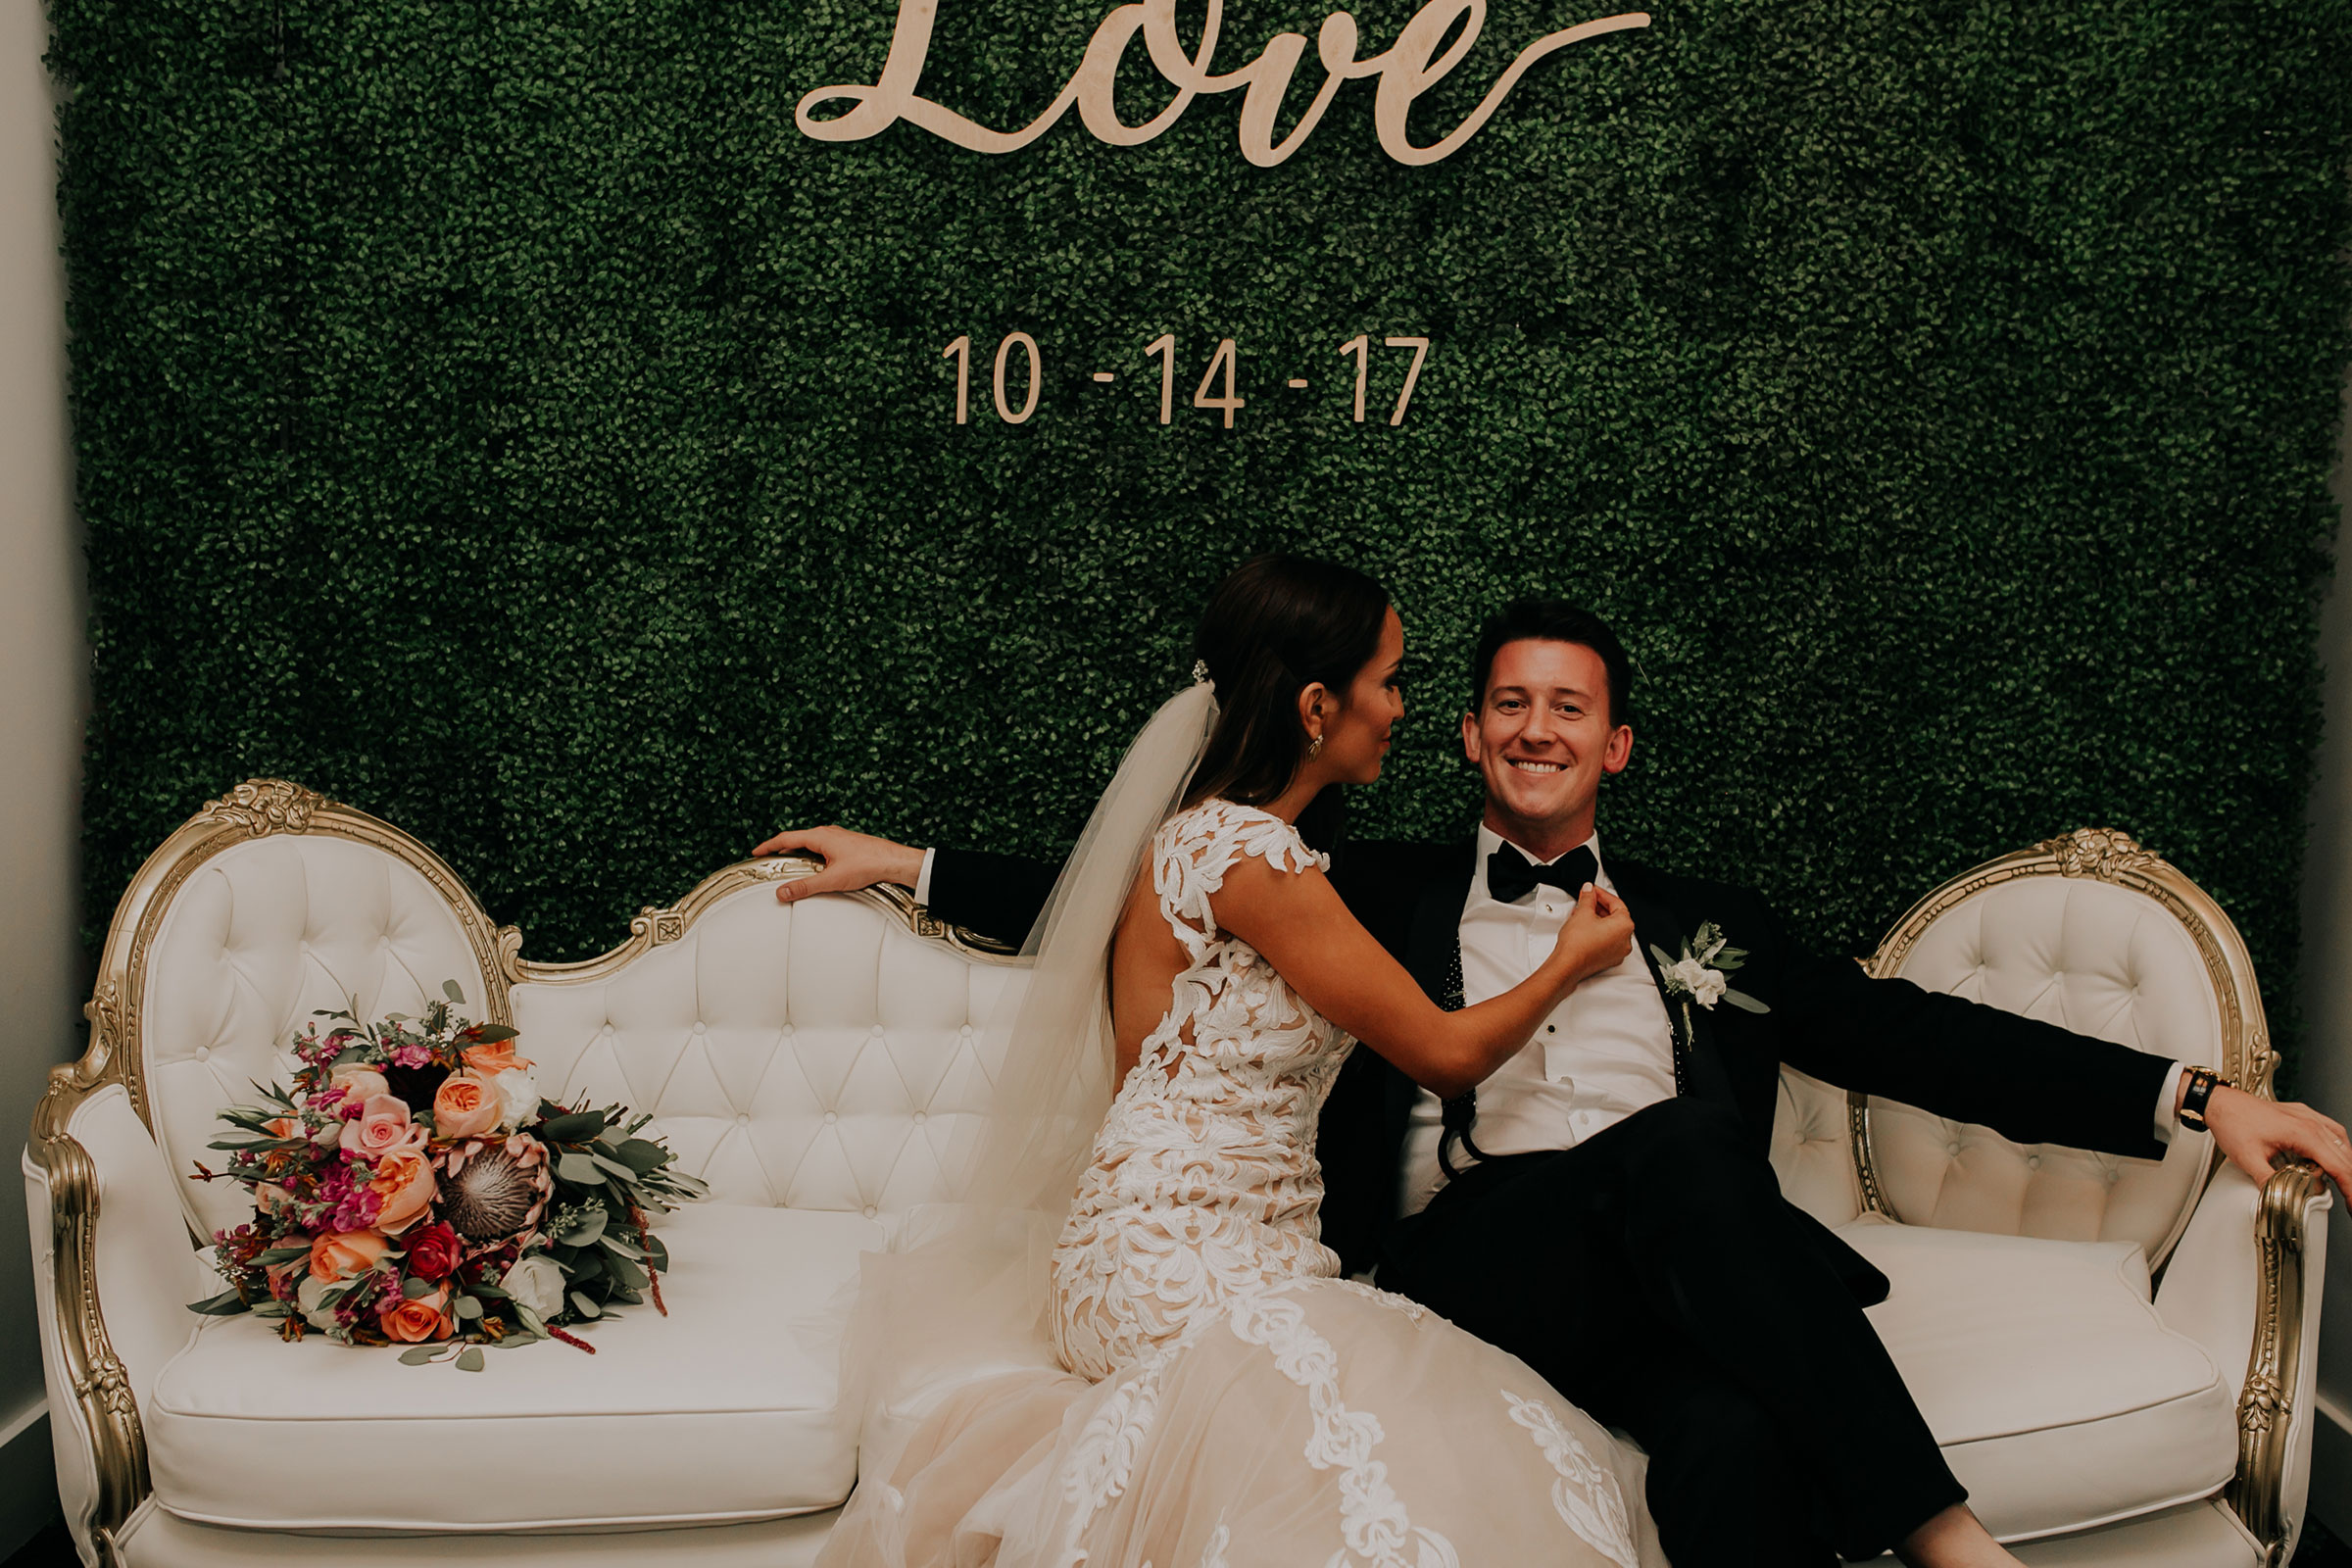 bride-groom-sitting-in-photo-booth-with-victorian-couch-founders-one-nine-omaha-nebraska-raelyn-ramey-photography.jpg